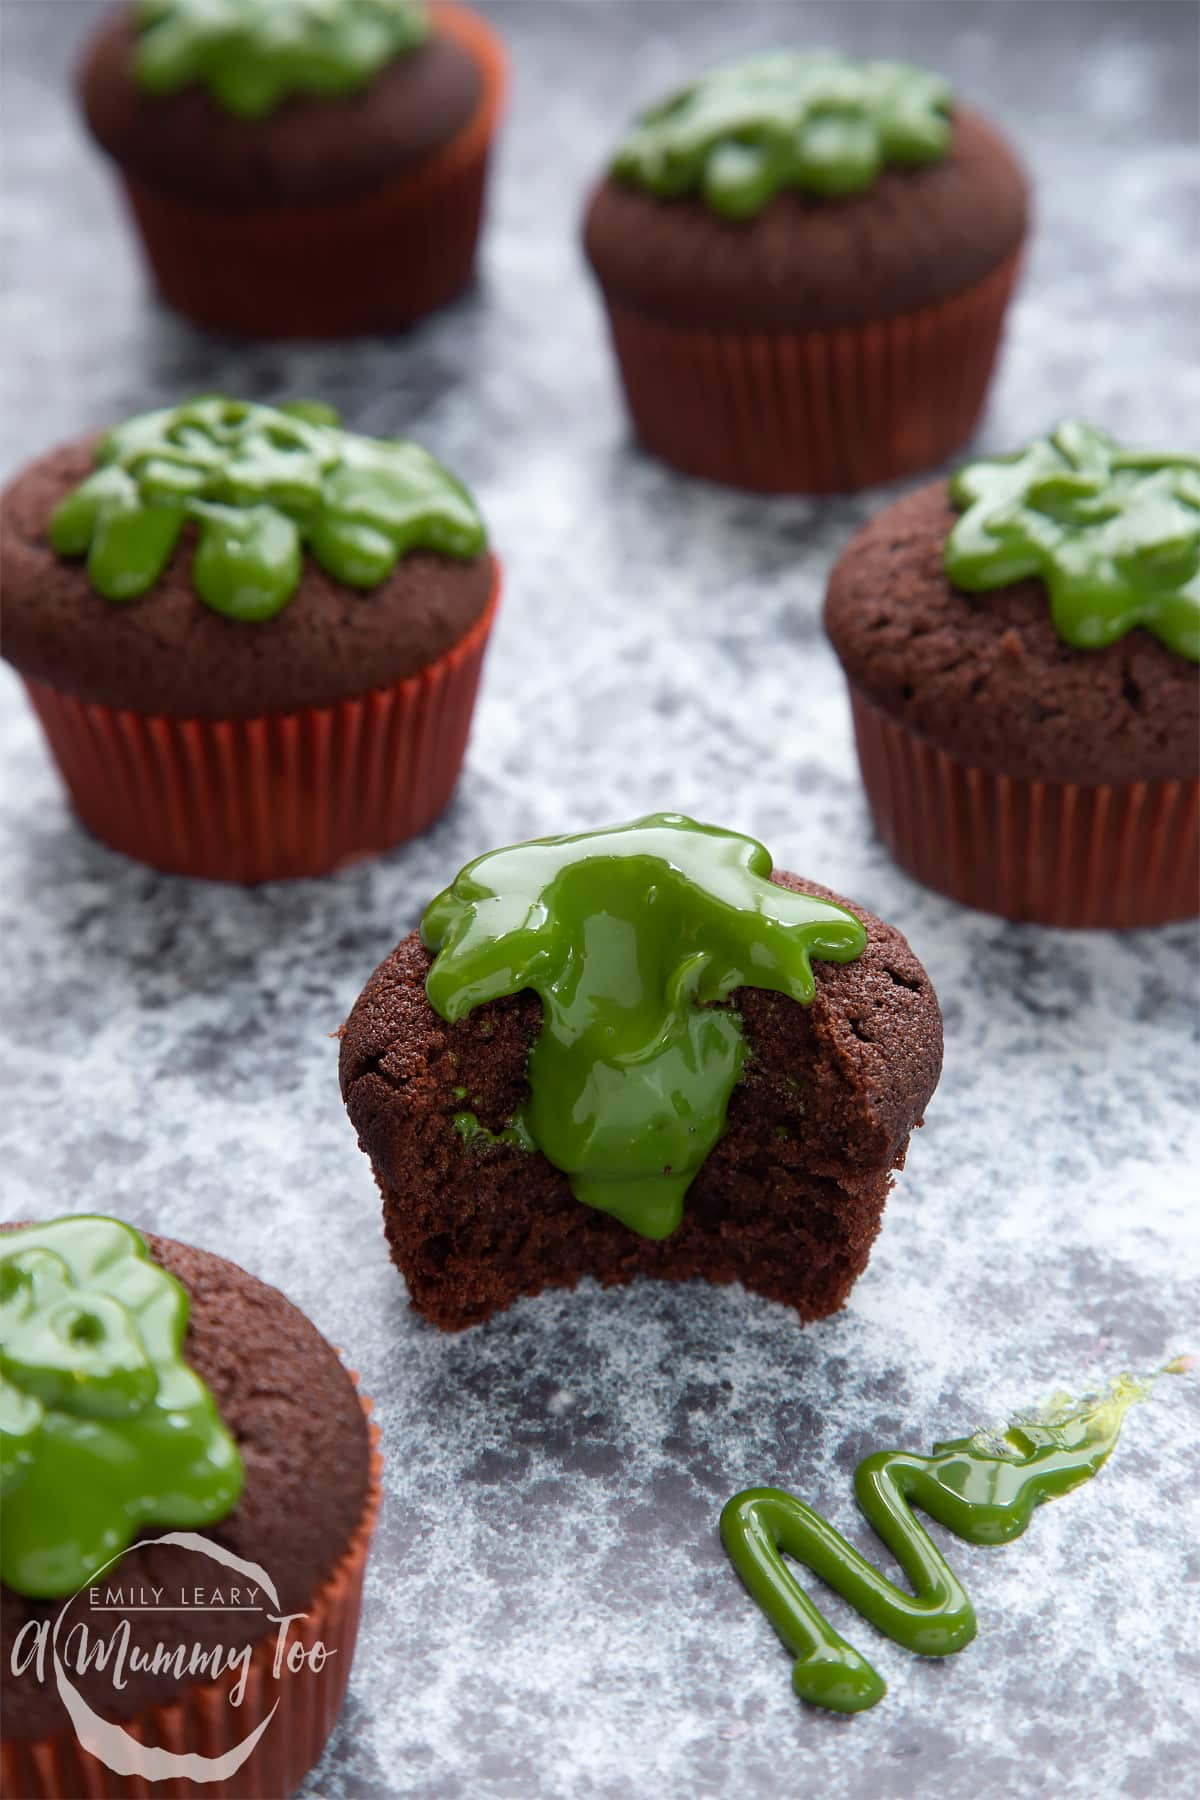 Slime cupcakes on a black backdrop. The cakes have a chocolate sponge topped with dyed-green caramel. The cupcake in the foreground has been bitten into, revealing the caramel core.